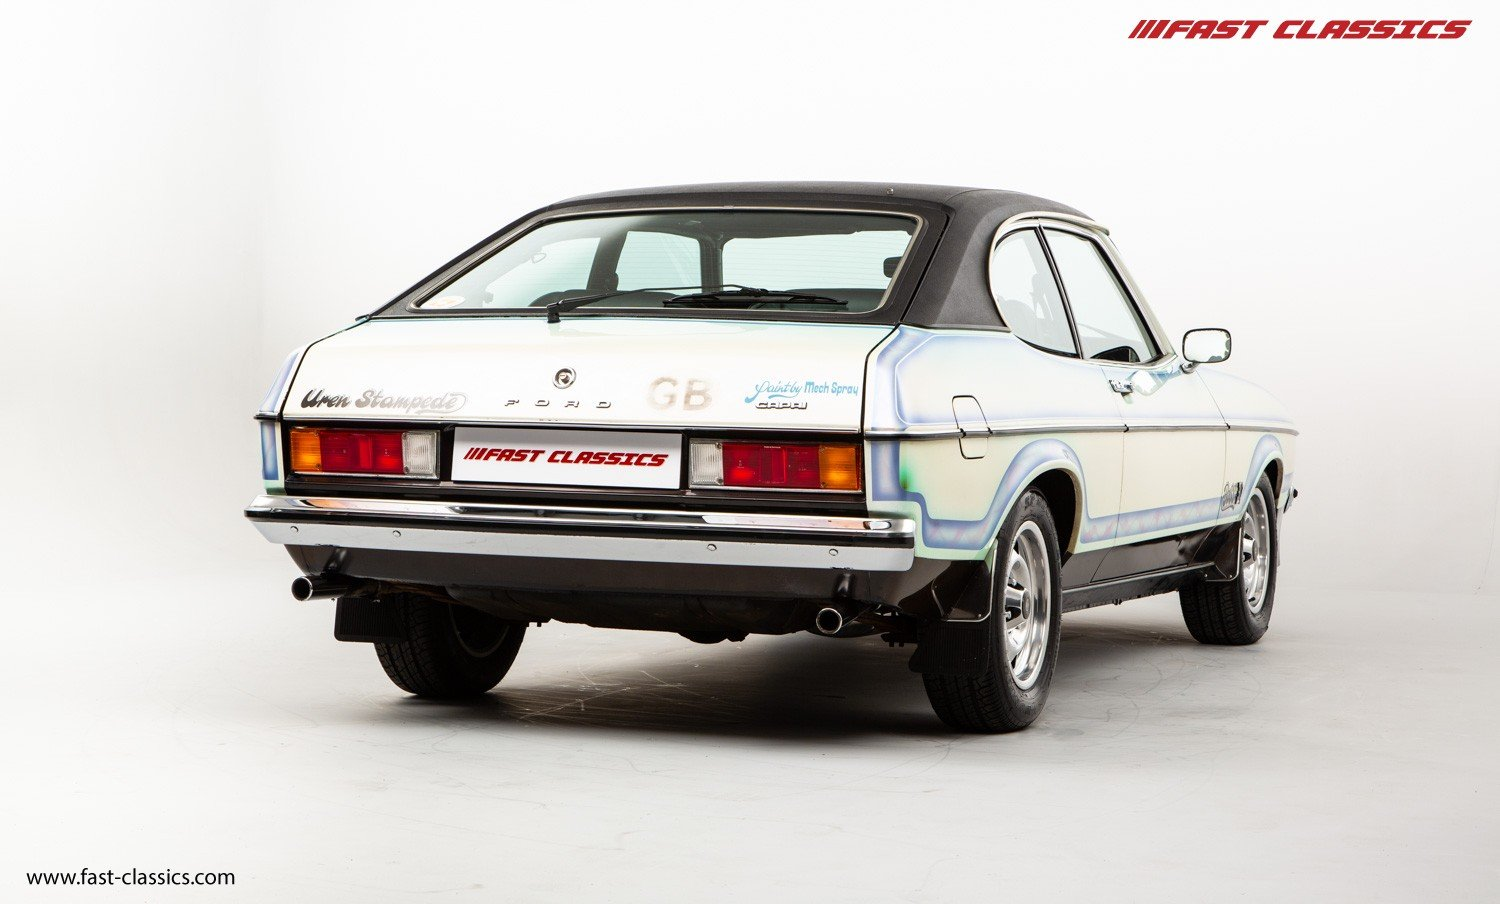 1974 FORD CAPRI STAMPEDE // 1 OF 1 // BOSS 302 V8 ENGINE For Sale (picture 3 of 6)